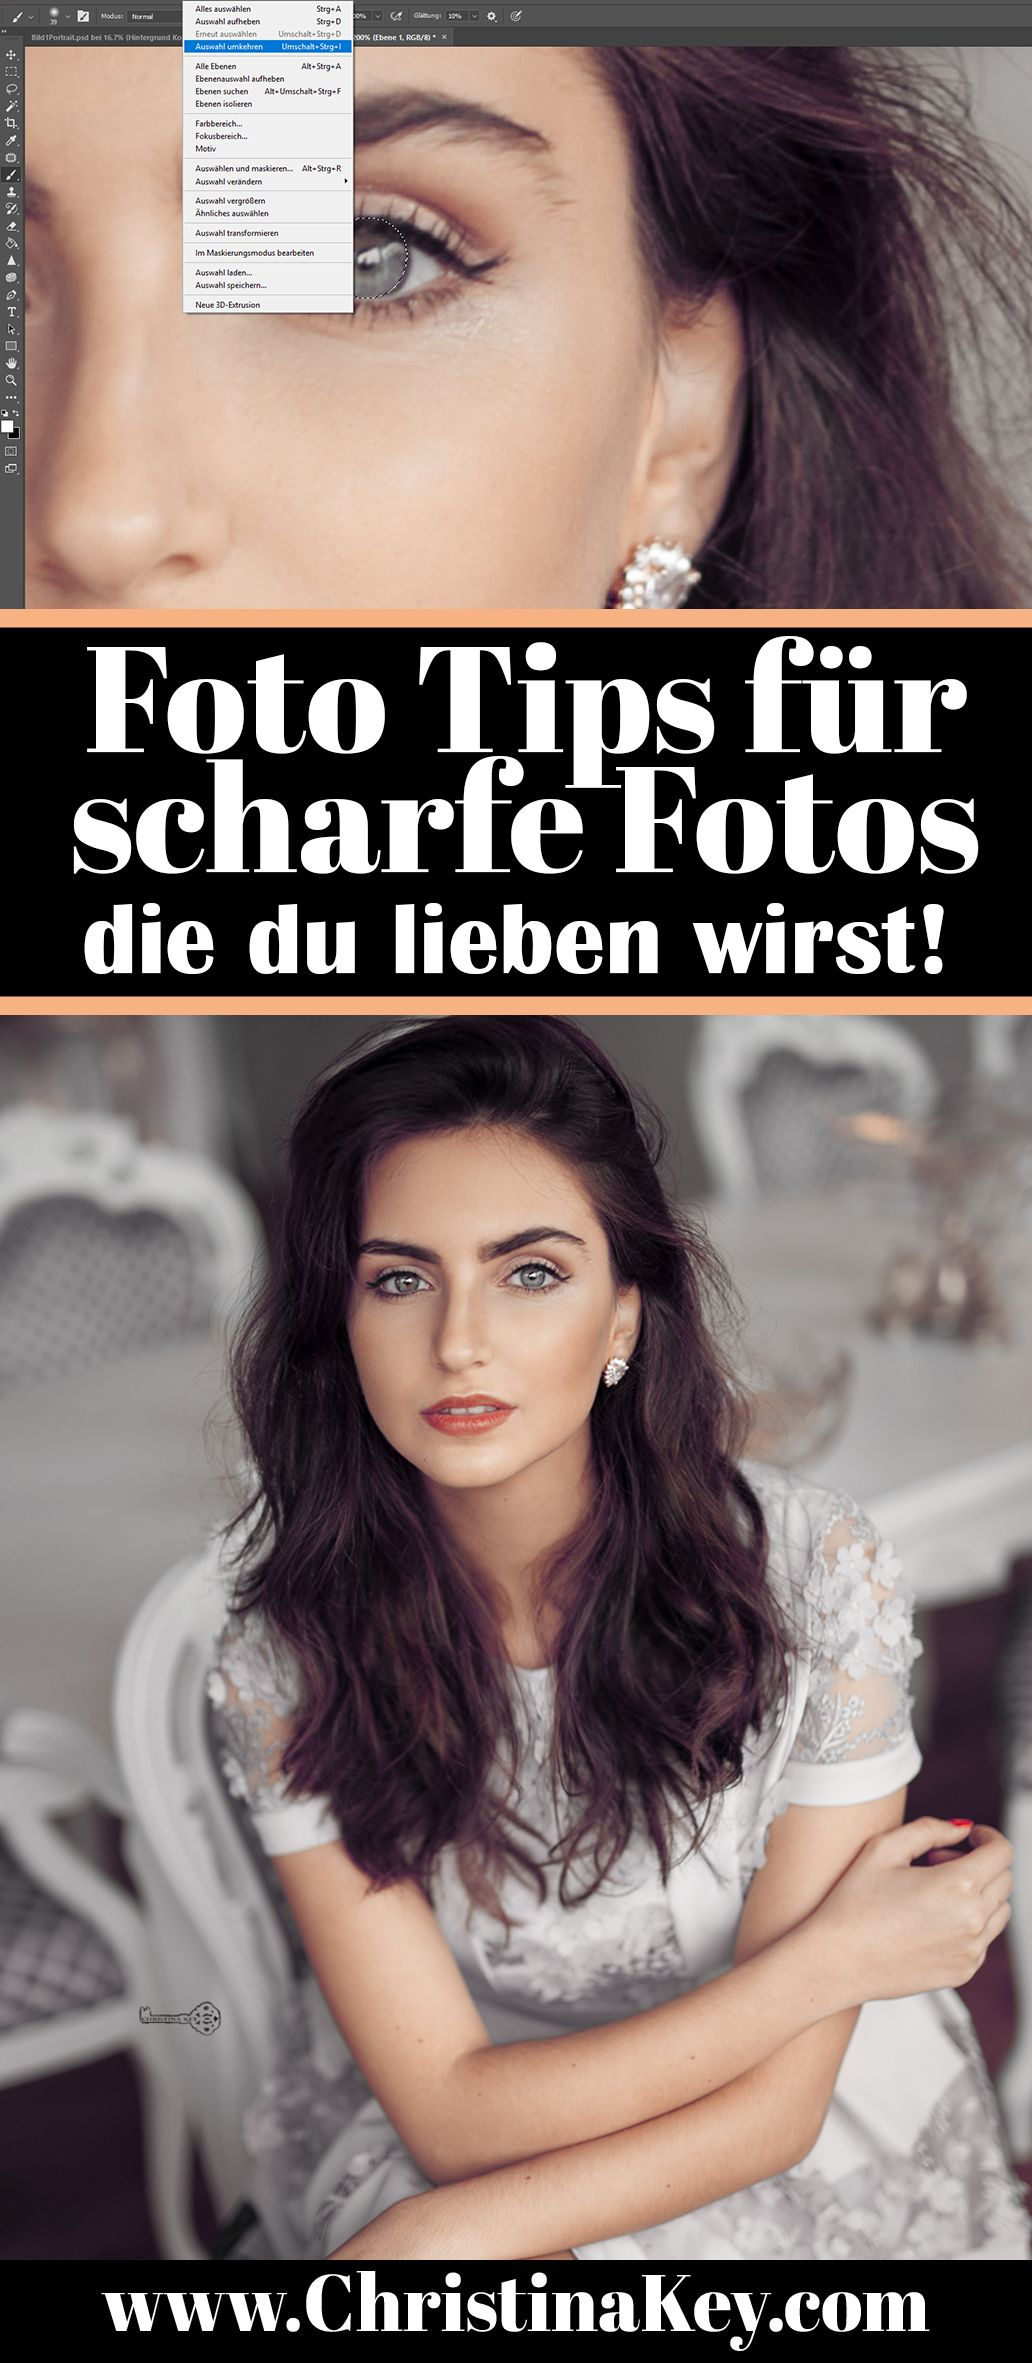 fotografie tipps so werden deine fotos scharf fotografie tipps pinterest fotografie fotos. Black Bedroom Furniture Sets. Home Design Ideas